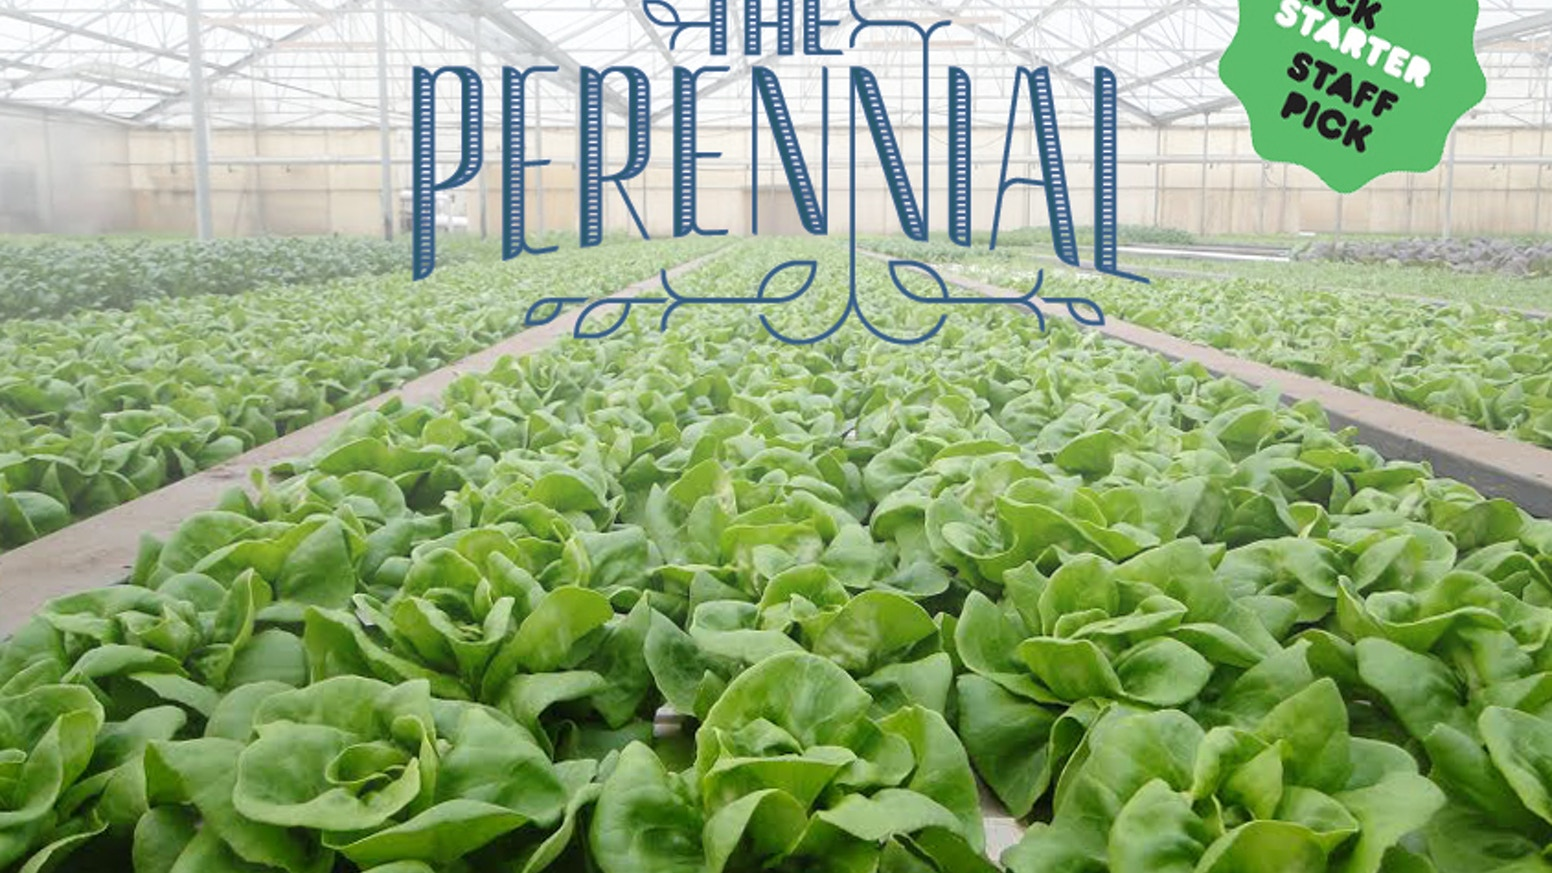 How sustainable can a restaurant be? We plan to find out at The Perennial, a new restaurant from a founder of Mission Chinese Food.